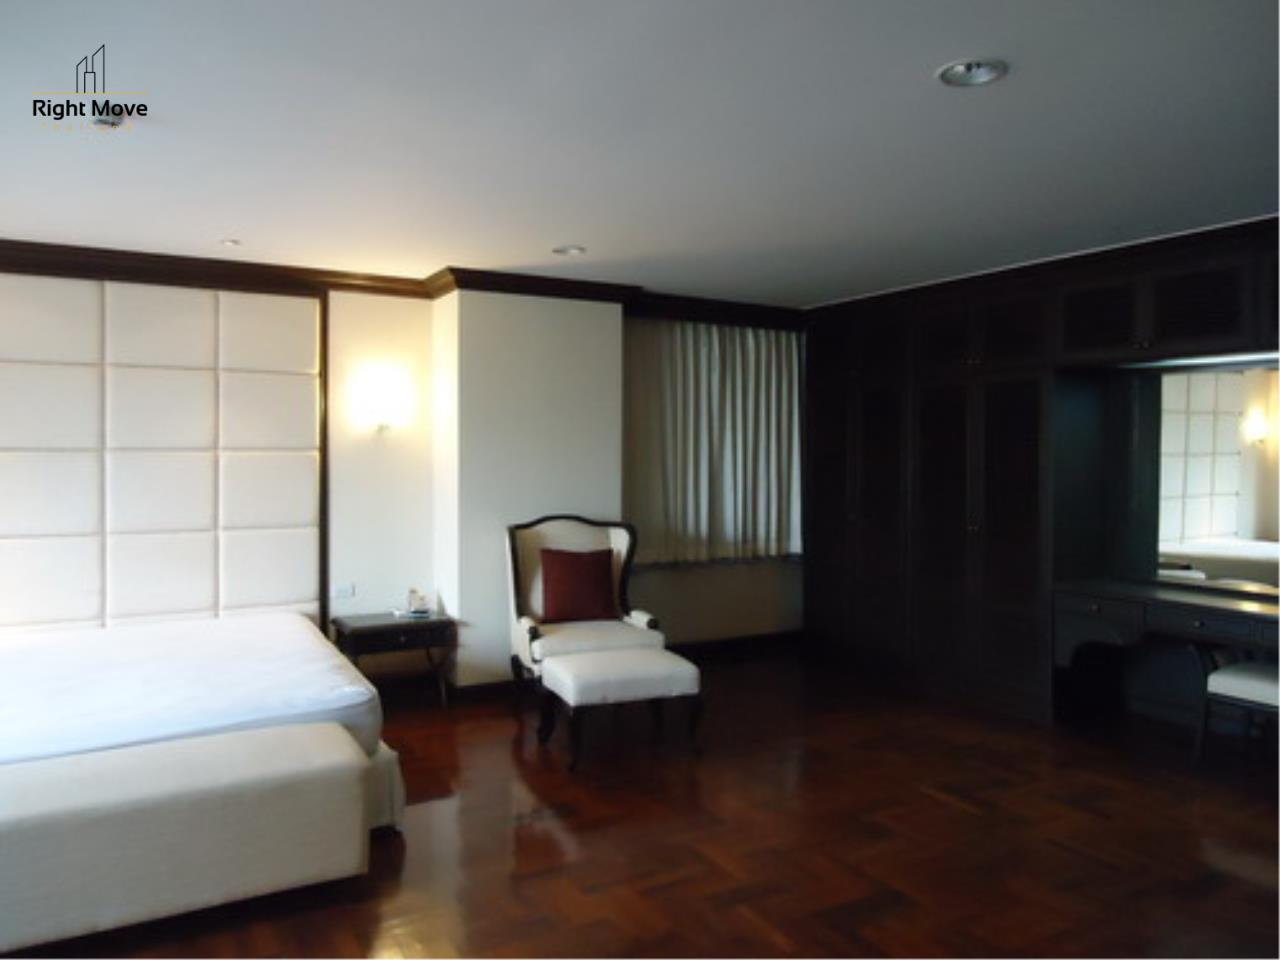 Right Move Thailand Agency's CA3559 Penthouse Duplex For Rent 150,000 THB 4+1 Bedrooms 600 Sqm 6